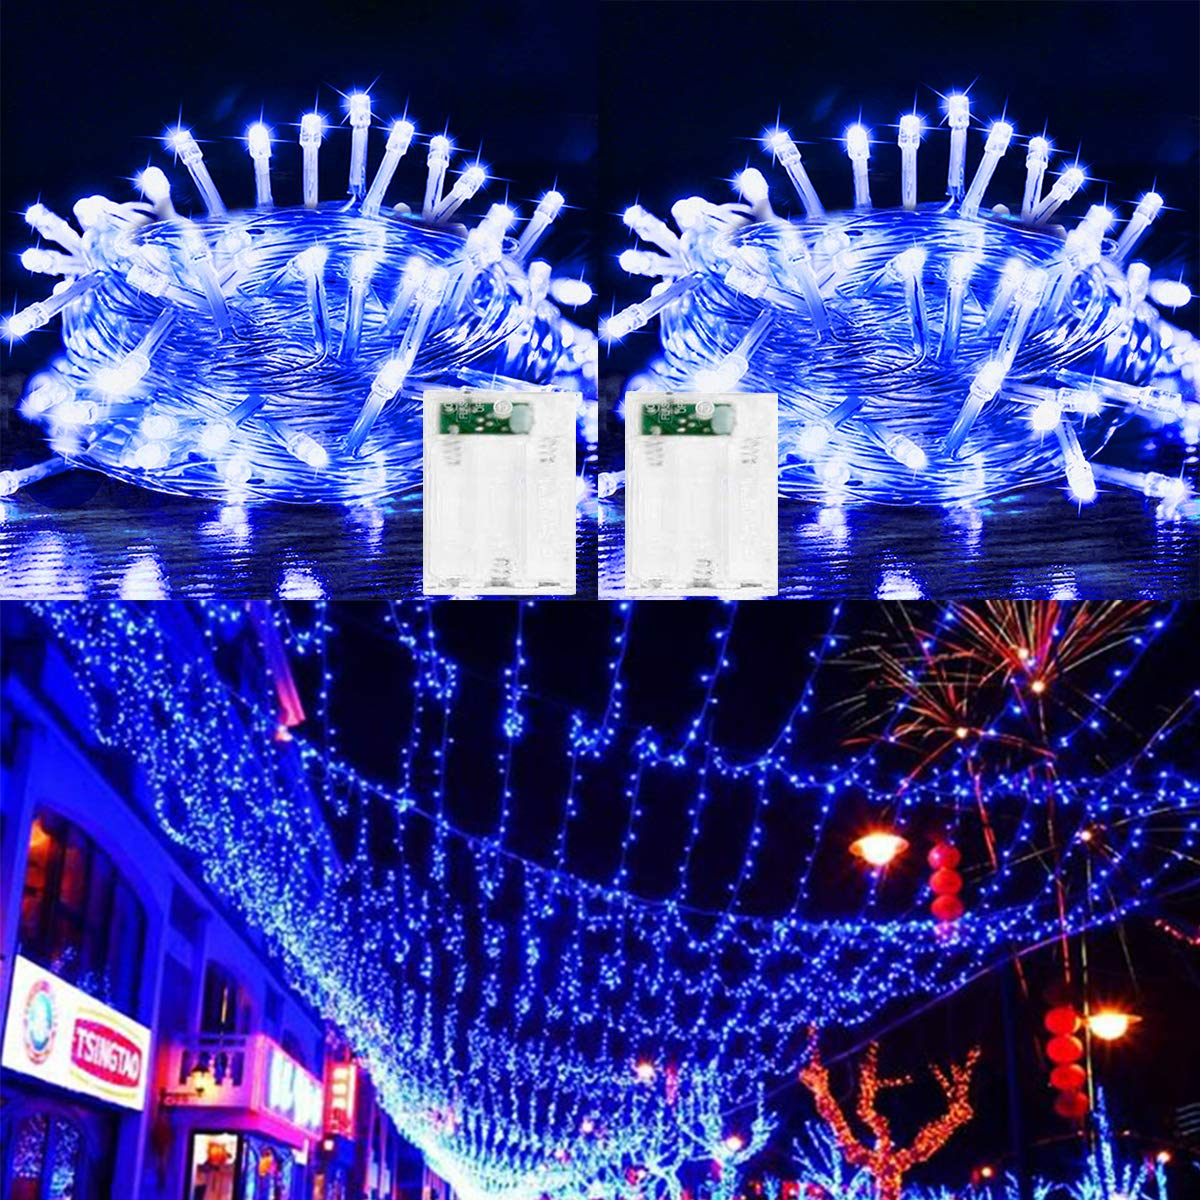 2 Pack LED String Lights Battery Operated Fairy String Lights Twinkle Decorative Lights 50 LED 16.5ft Battery Powered Starry Lights for Bedroom, Wedding, Chirstmas, Festival Party, Garden, Patio Decor